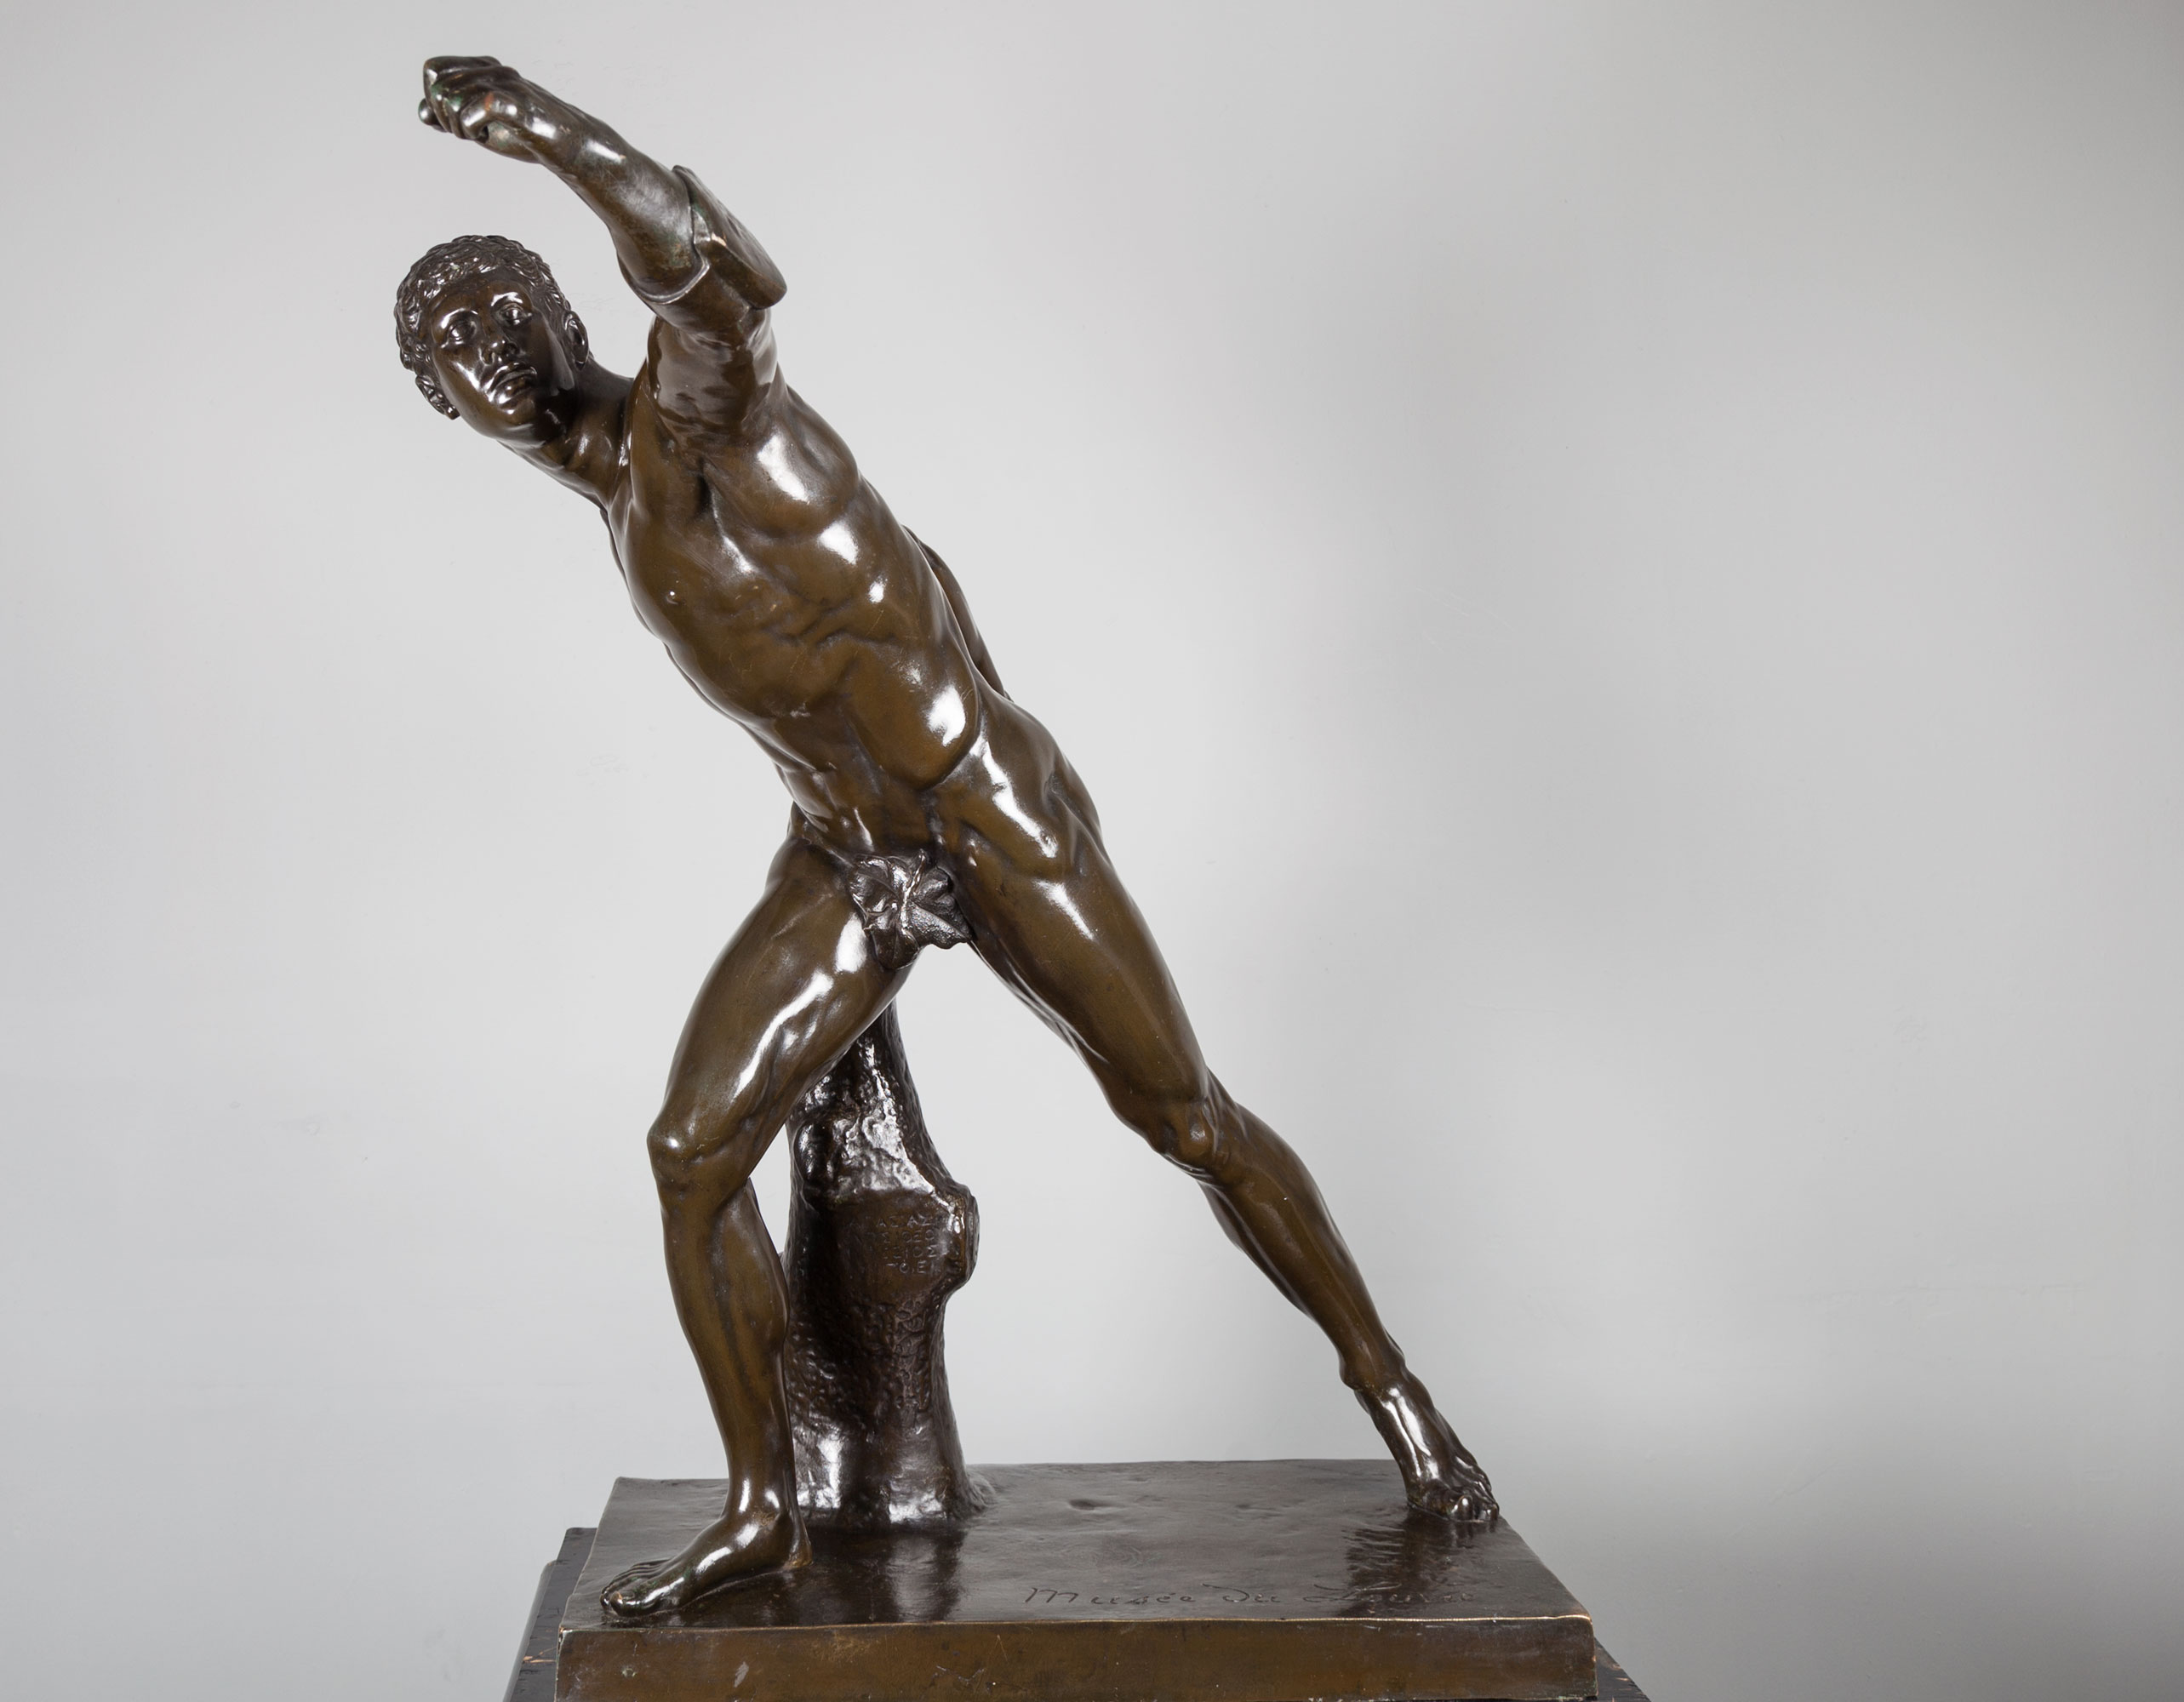 SC019 – Bronze Sculpture